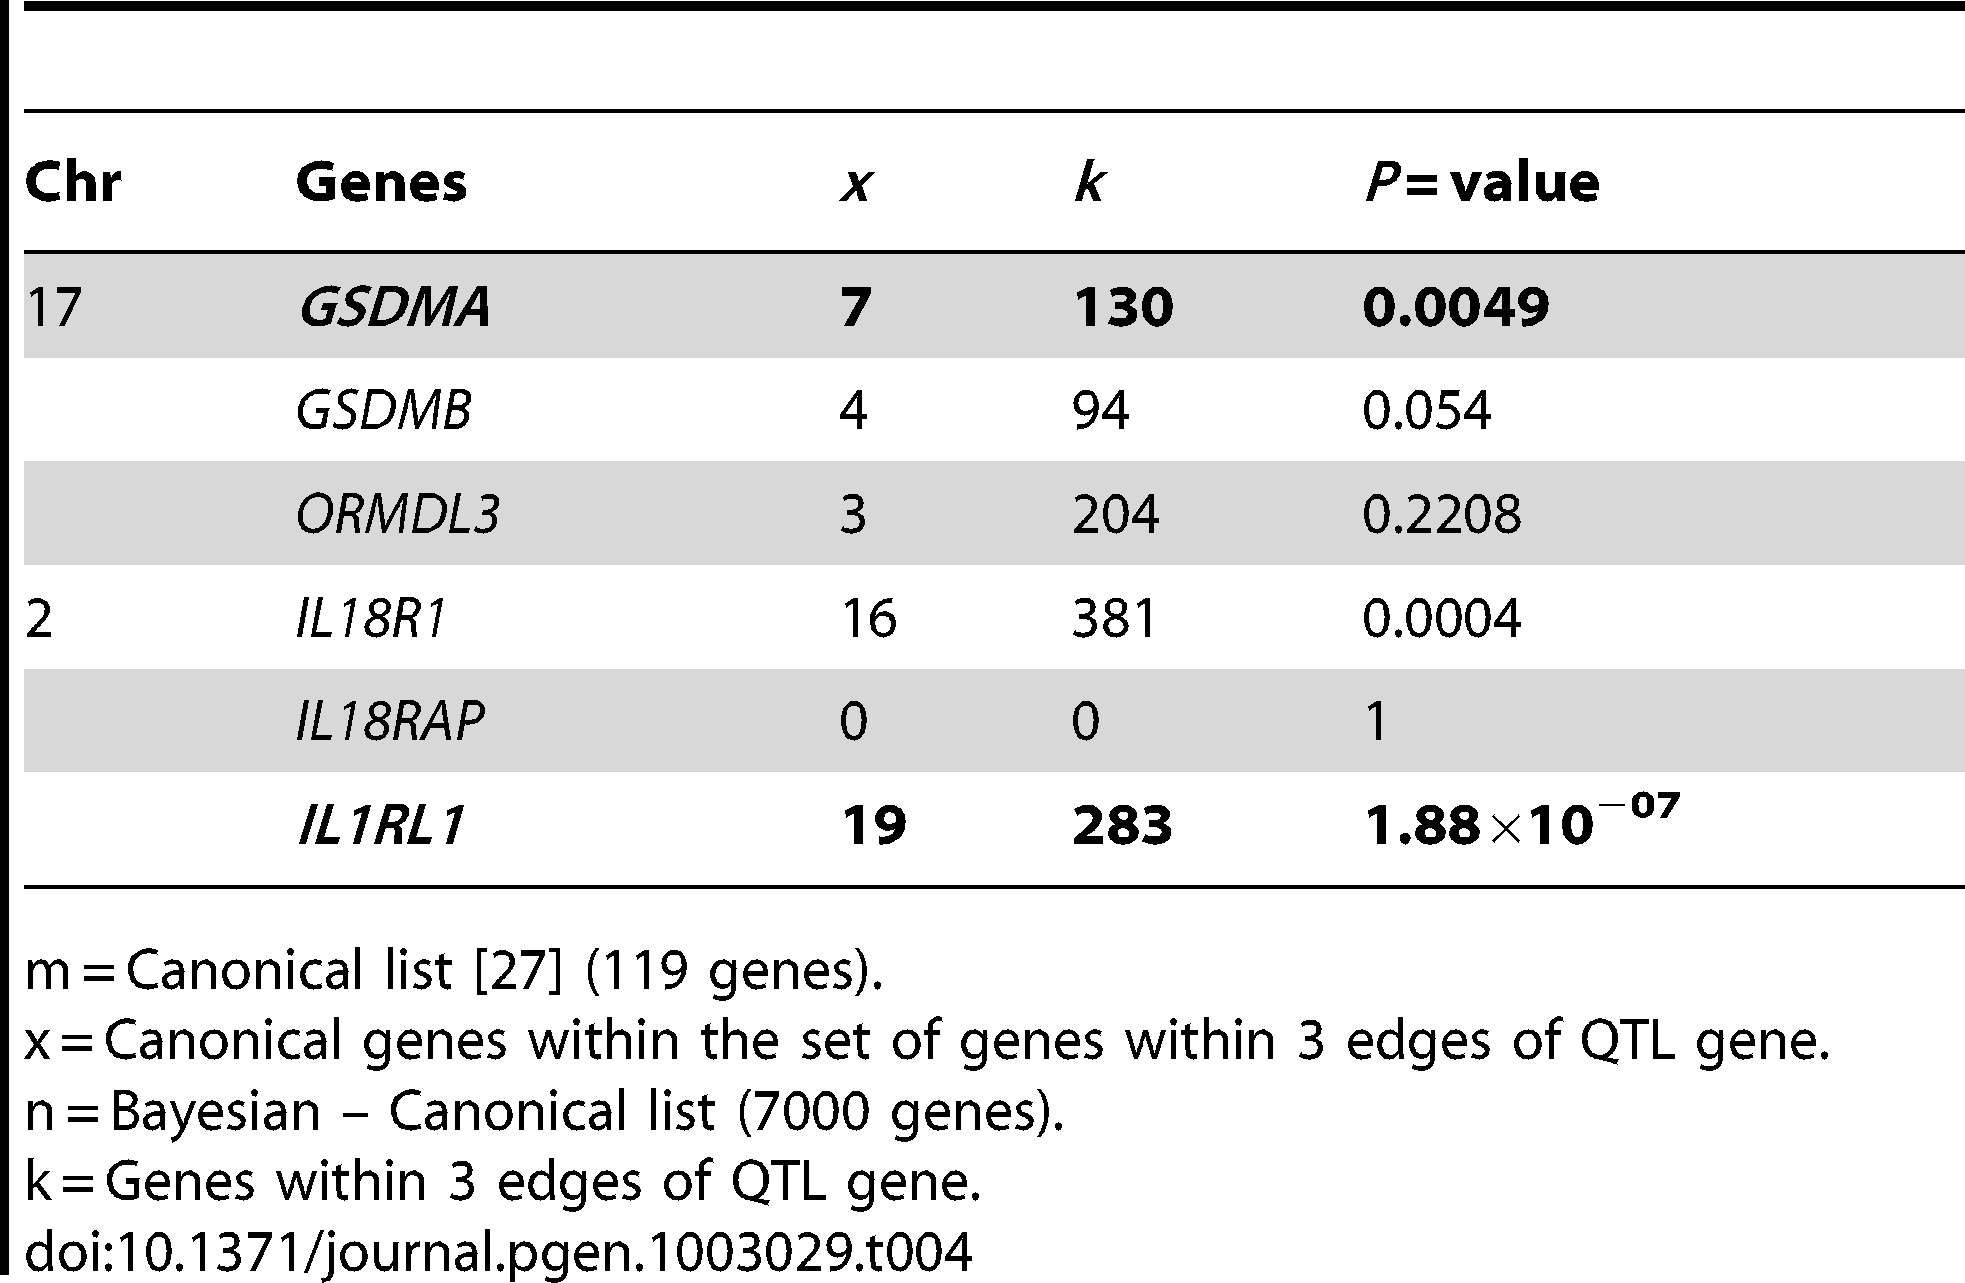 Driver genes behind the asthma association on 17q21 and 2q12.